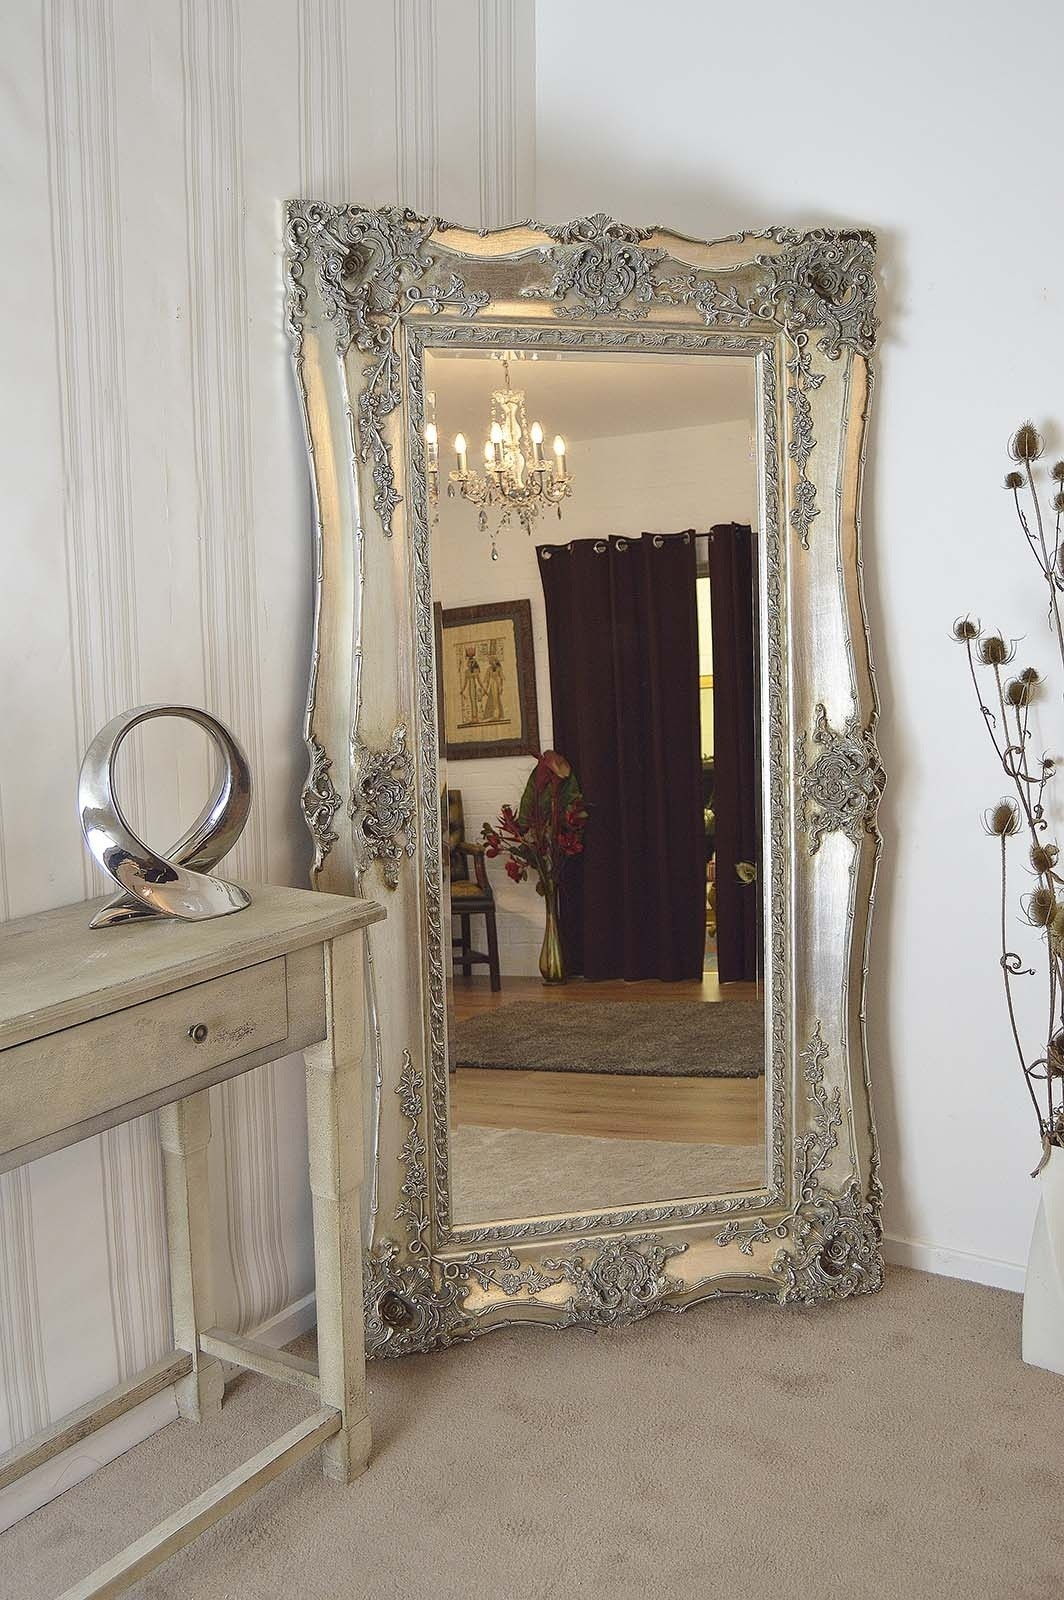 Extra Large Mirrors 10 Tips For Choosing Inovodecor For Large Ornate Mirrors For Sale (Image 6 of 15)